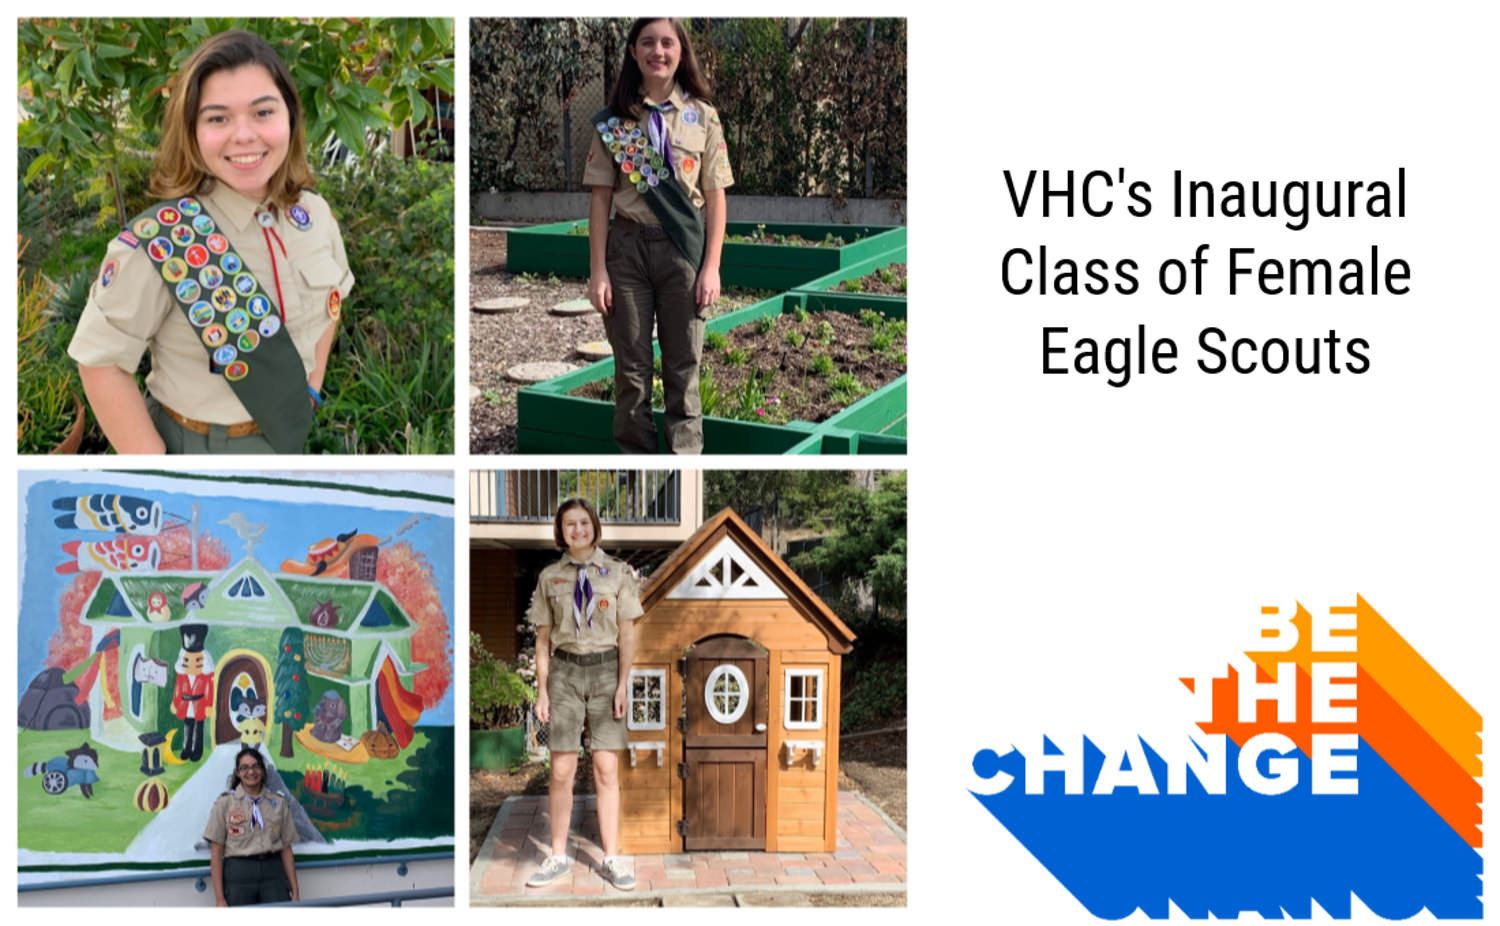 VHC's Inaugural Class of Female Eagle Scouts